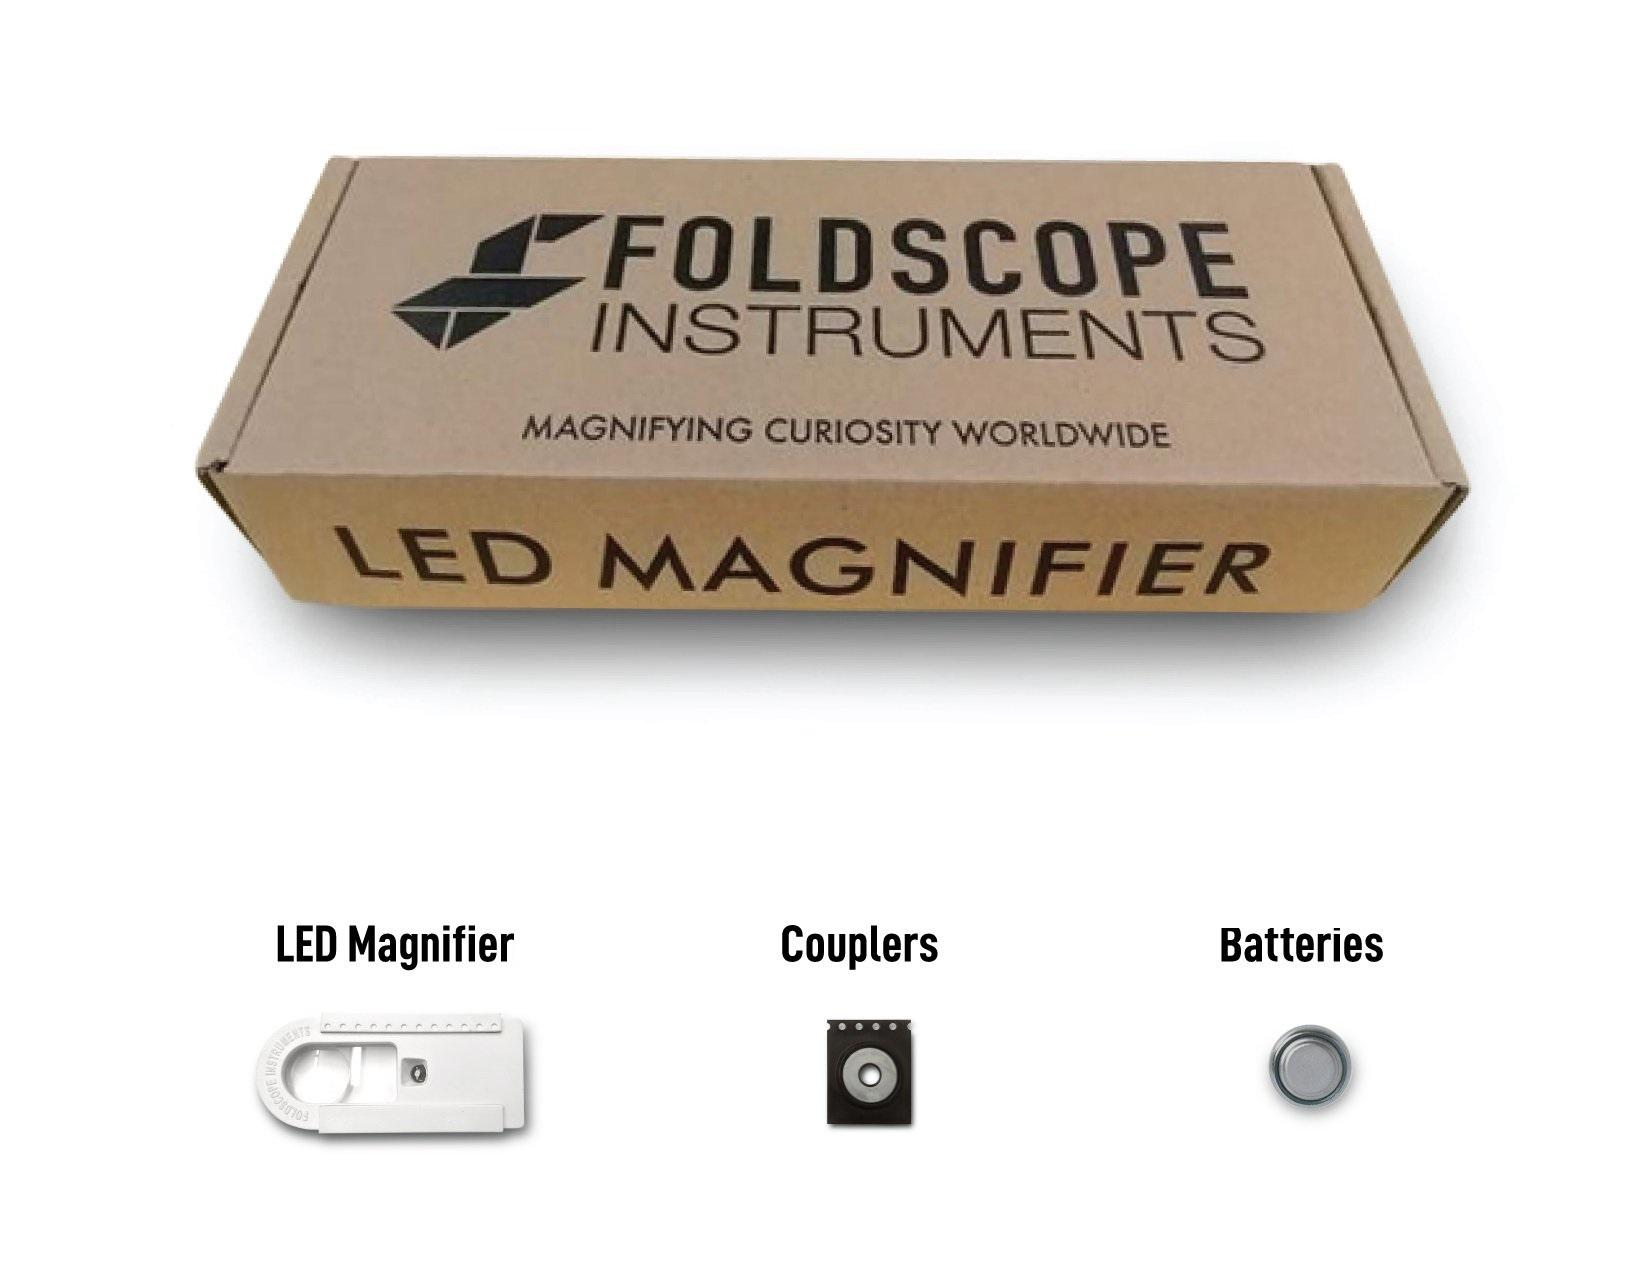 Foldscope LED Magnifier for Paper Microscope image